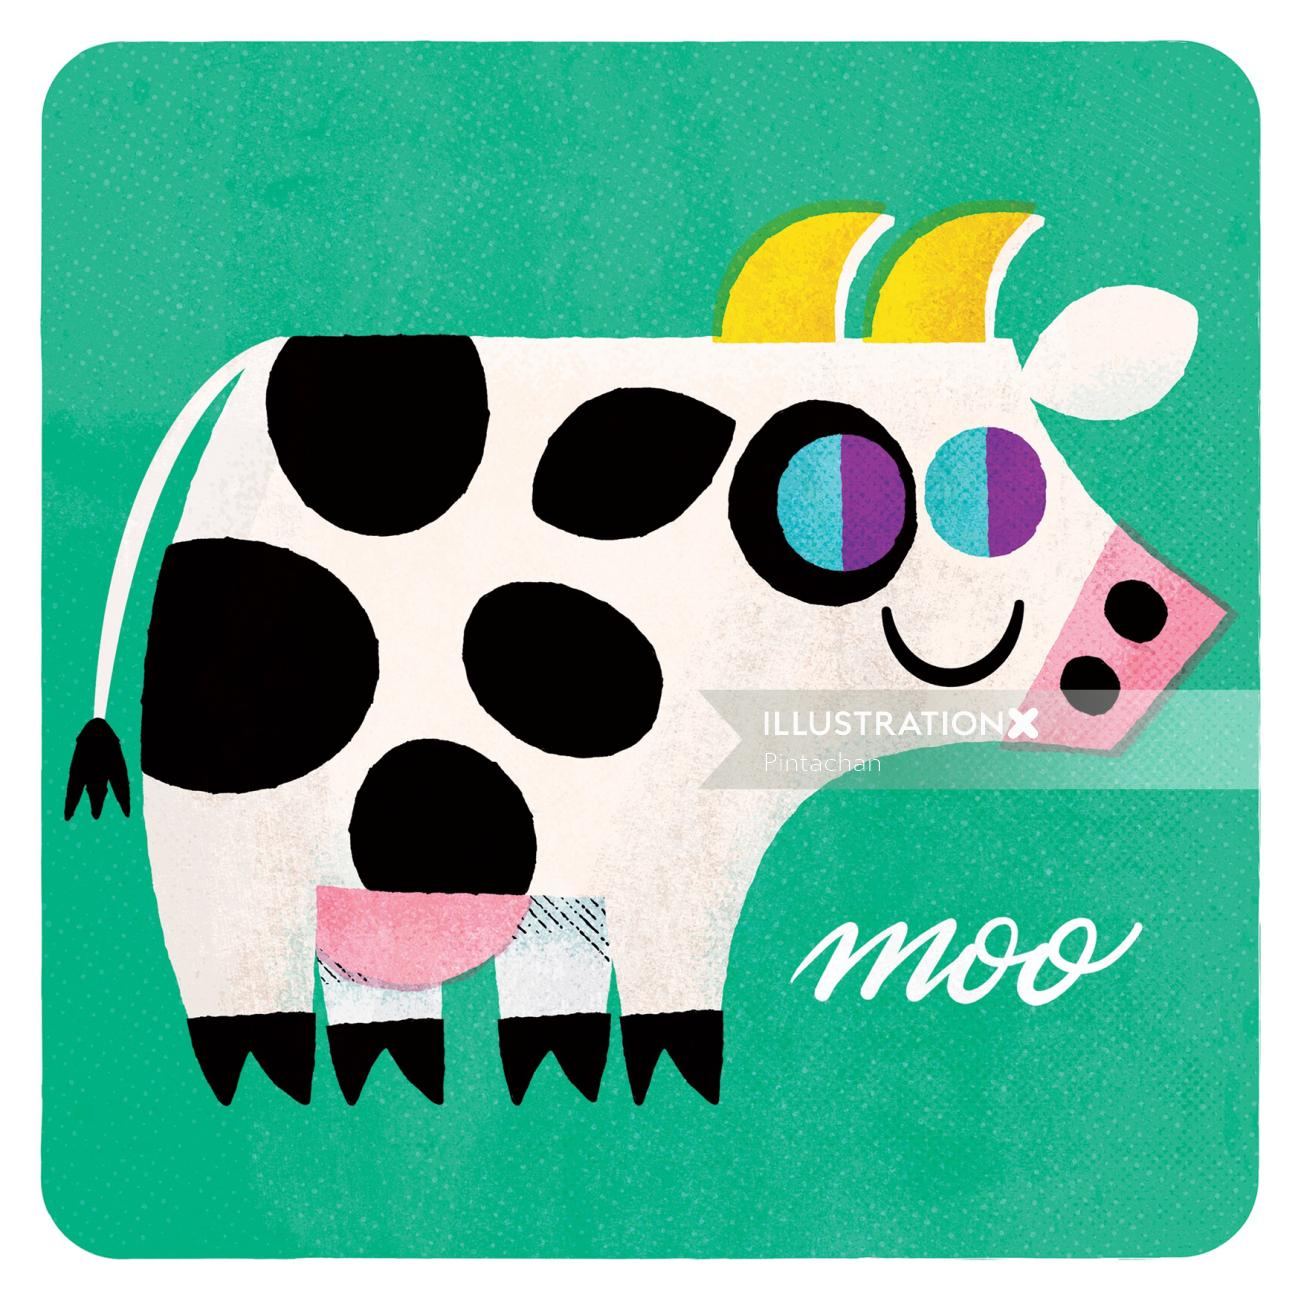 Illustration of a cartoon cow